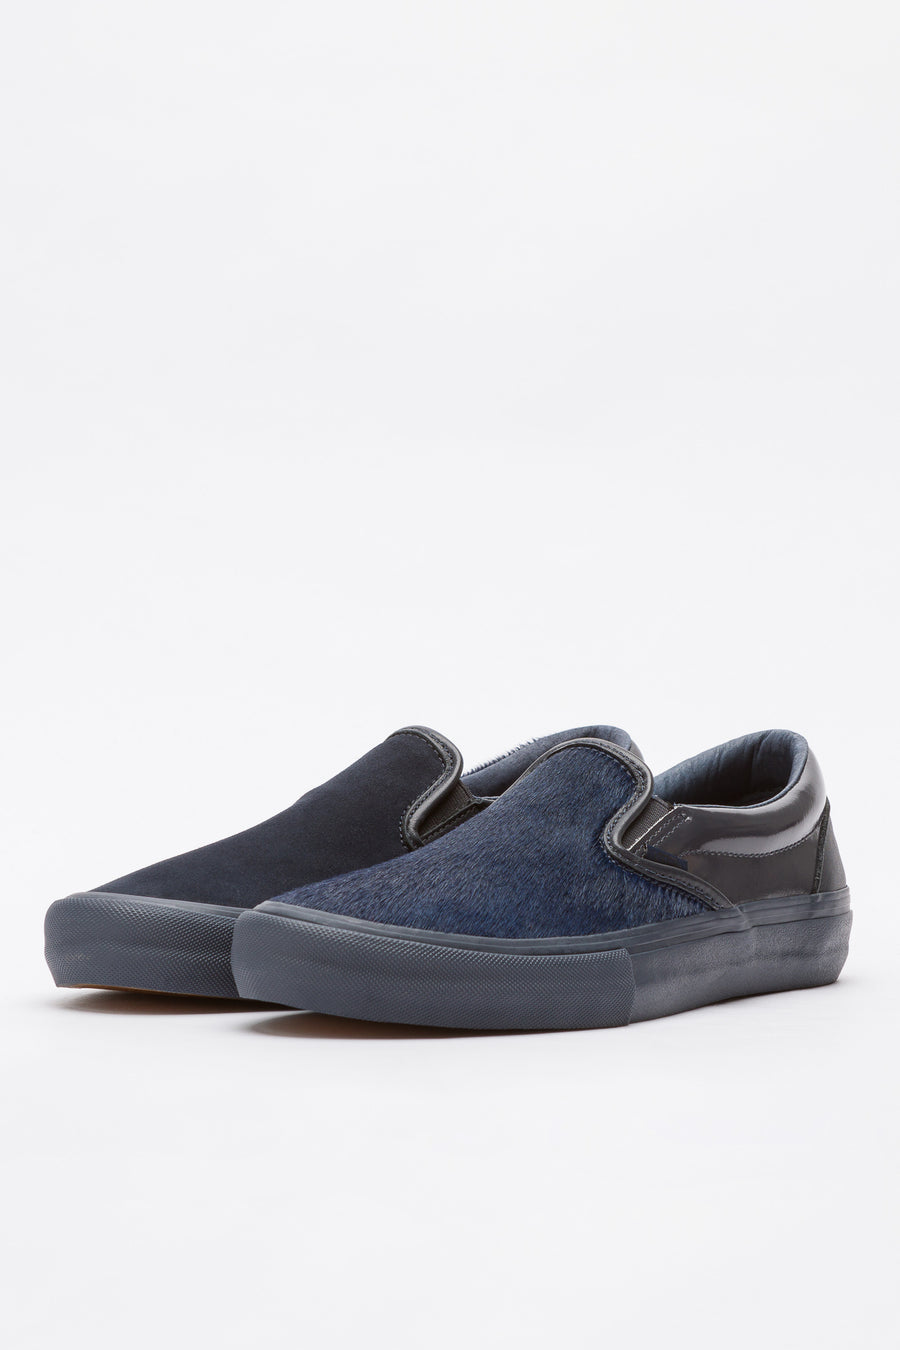 Vans Vault Engineered Garments Classic Slip-On V in Navy - Notre